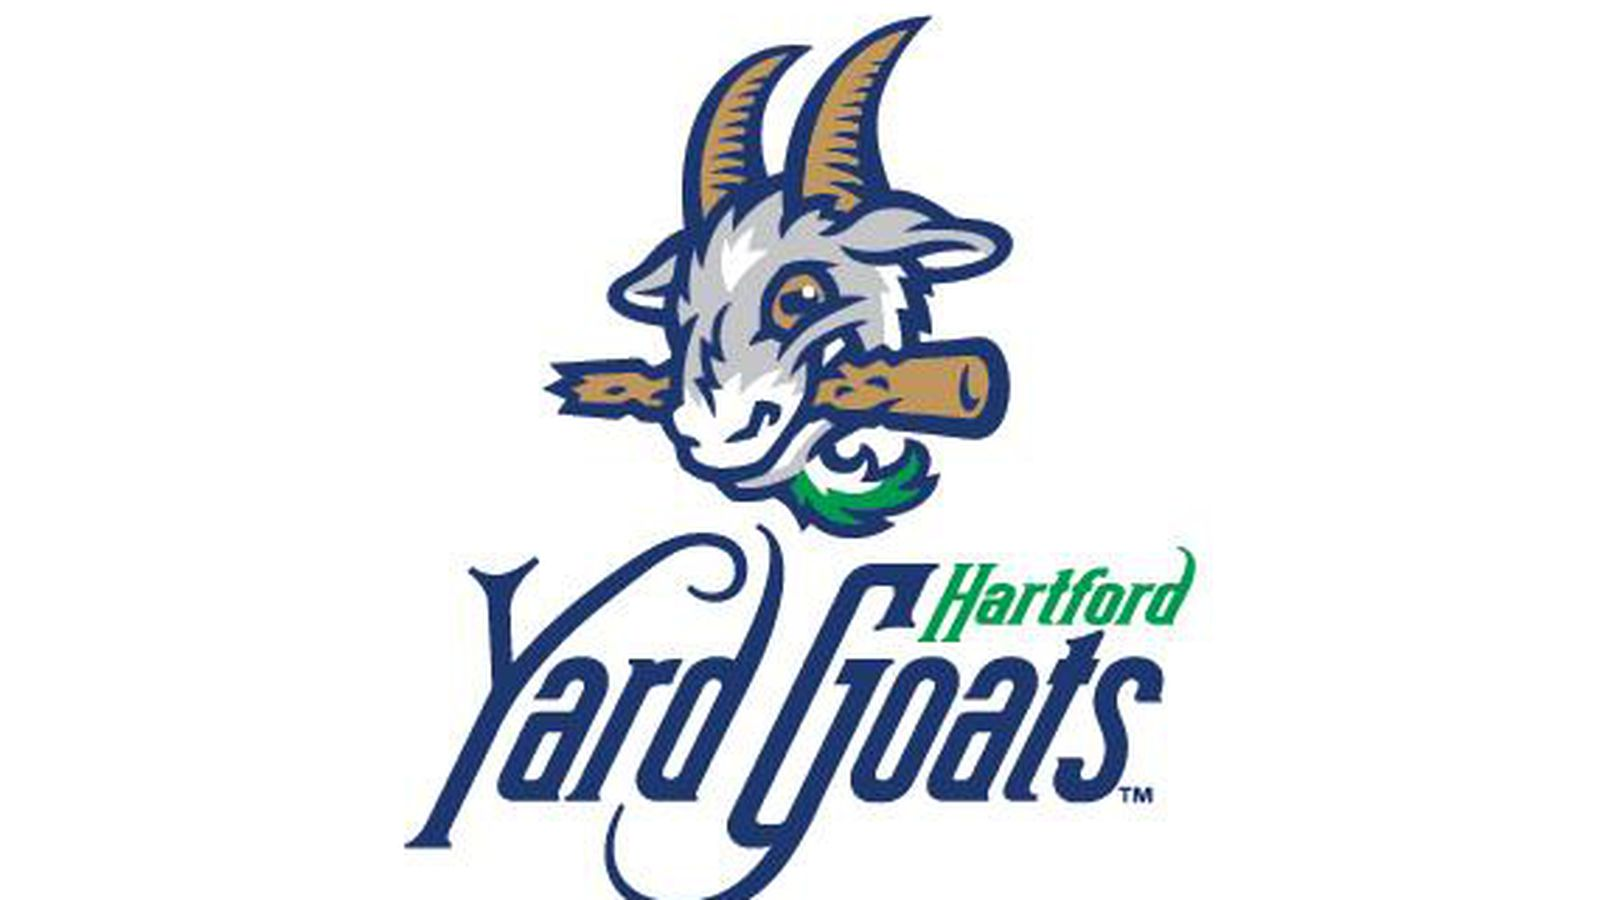 The Hartford Yard Goats Have A Logo With A Goat